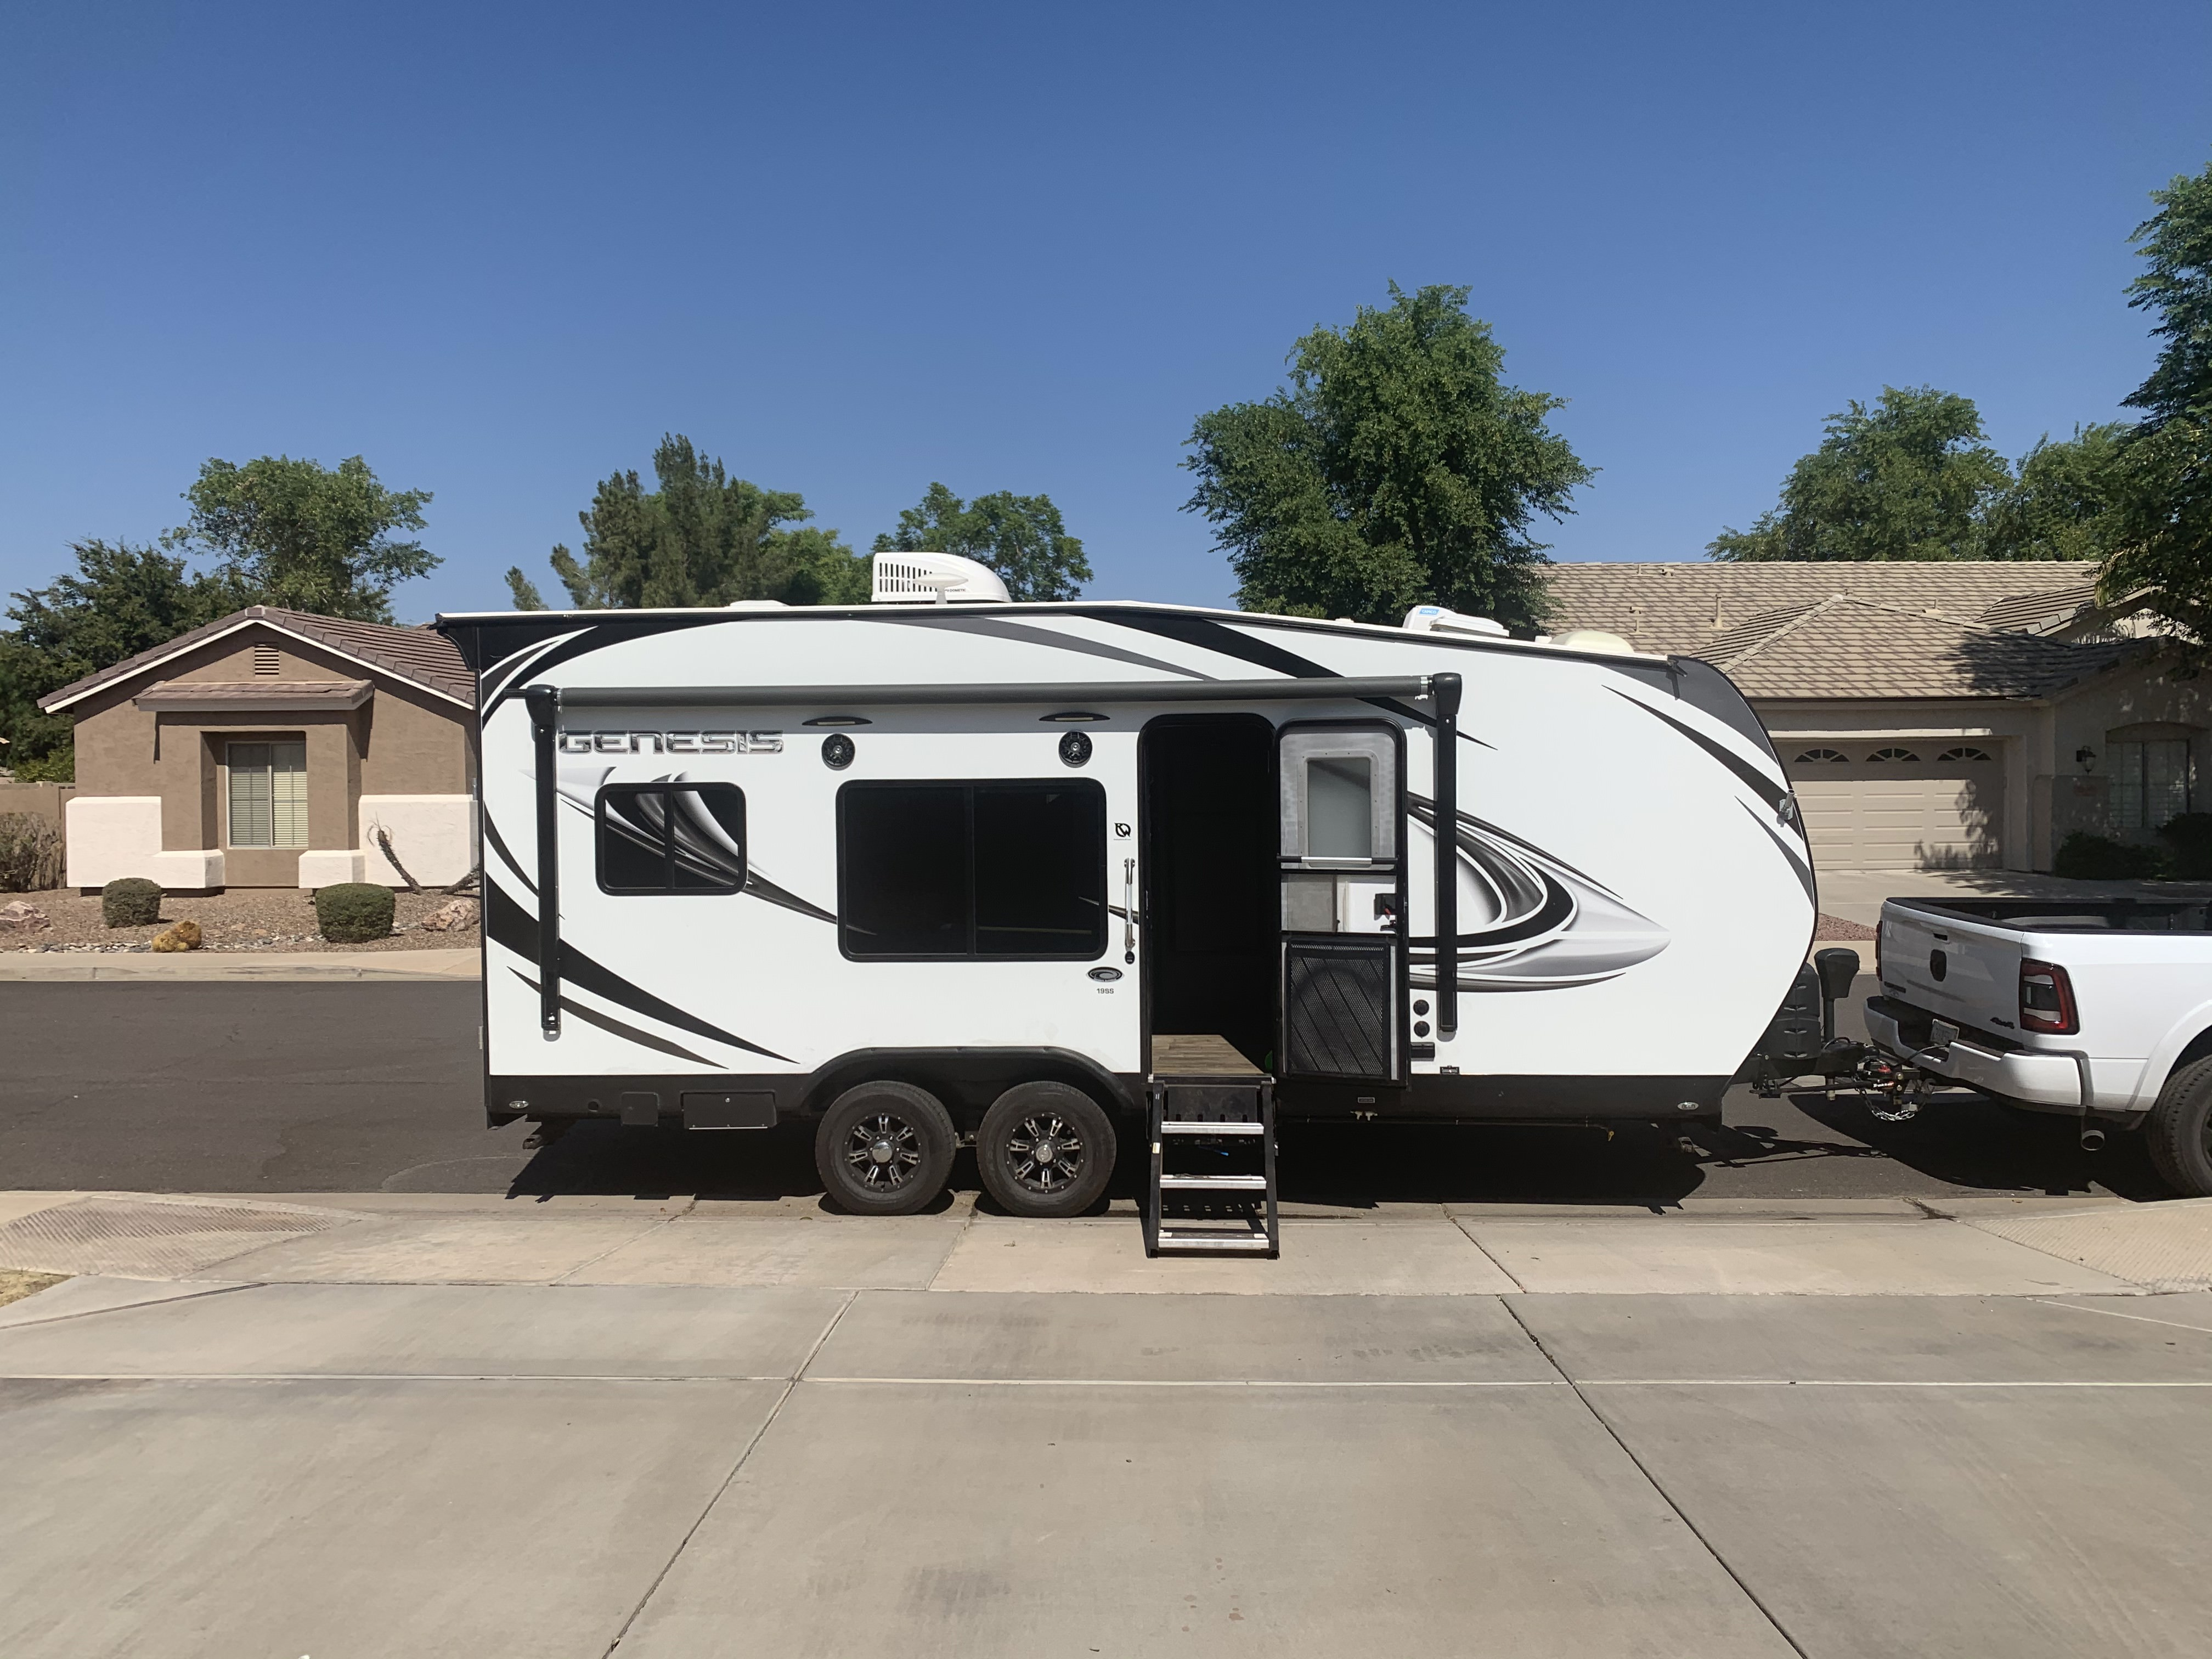 Outside 1. Genesis Supreme Rv Genesis Supreme 2018